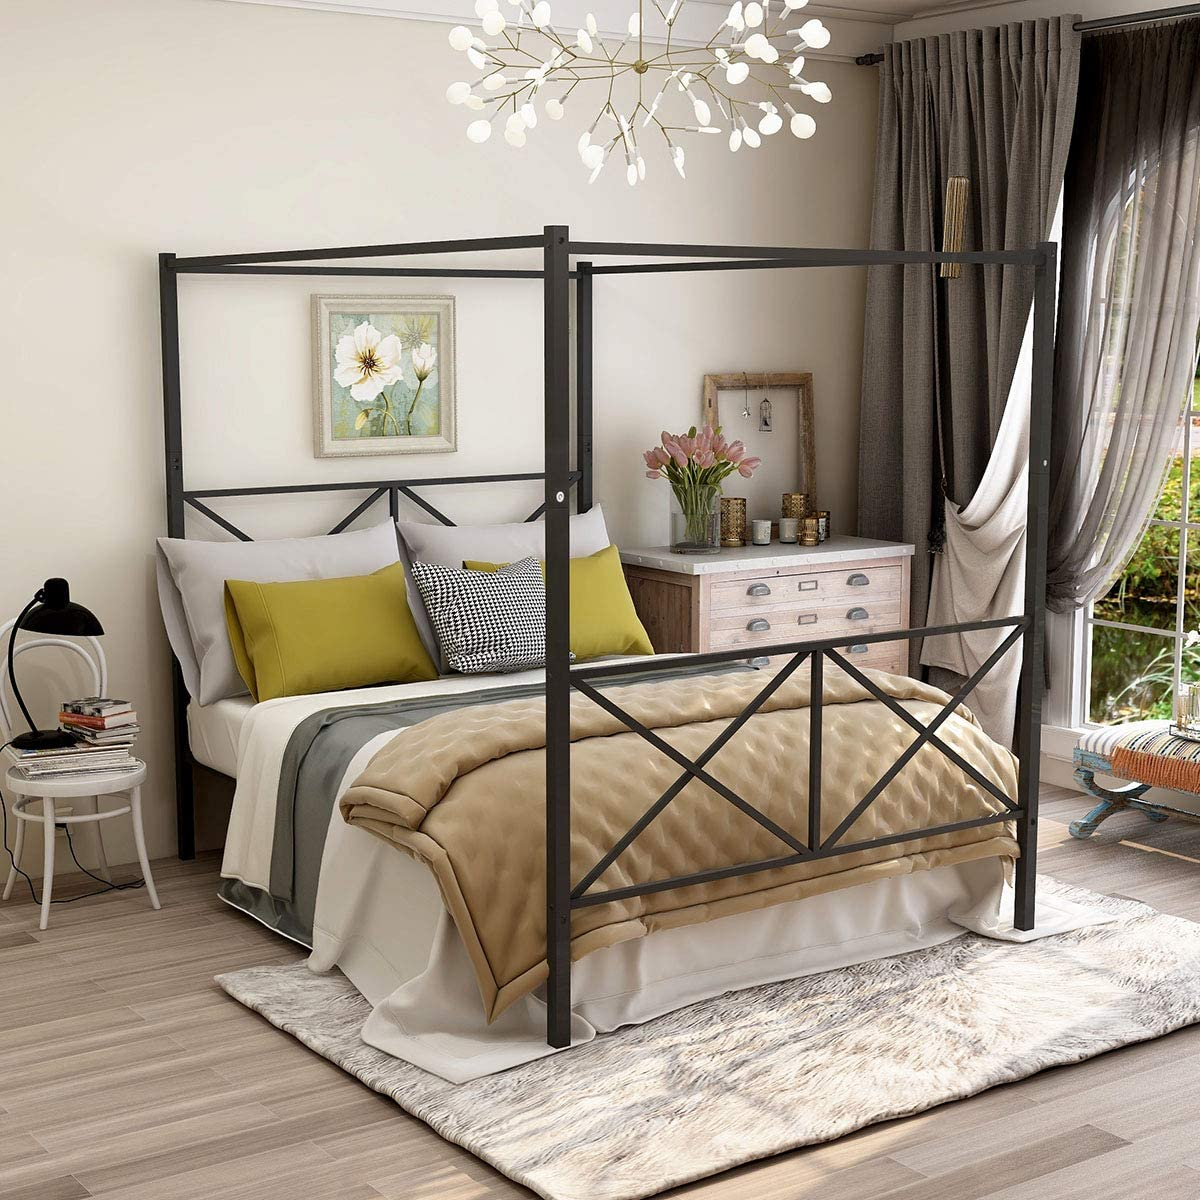 JURMERRY Full Size Metal Canopy Bed Frame with Ornate European Style Headboard & Footboard Sturdy Black Steel Holds 660lbs Perfectly Fits Your Mattress Easy DIY Assembly,Full Black